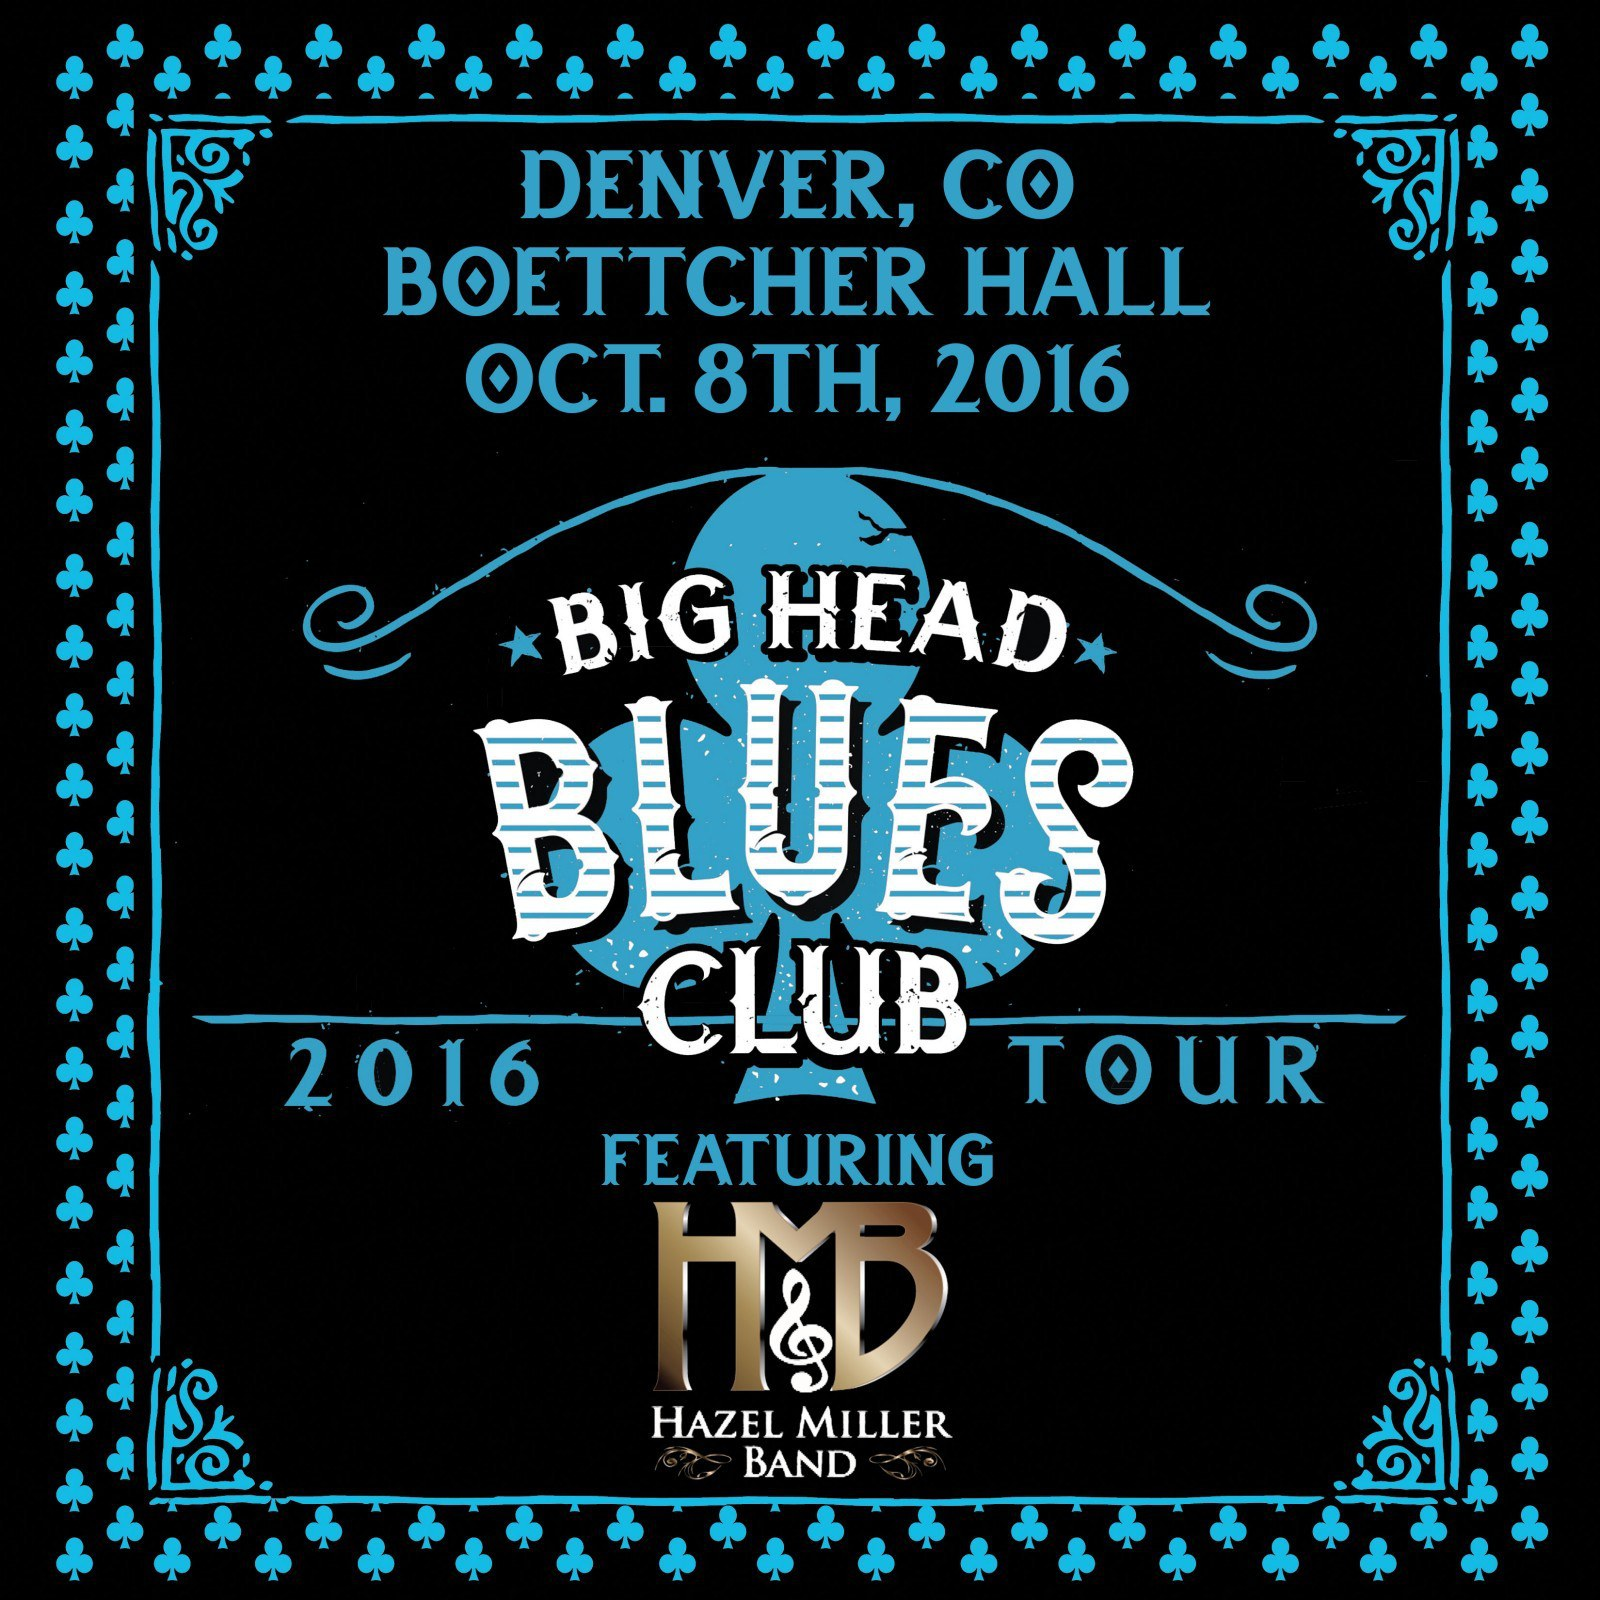 Hazel Miller Band to Join Big Head Blues Club in Denver on Oct 8th